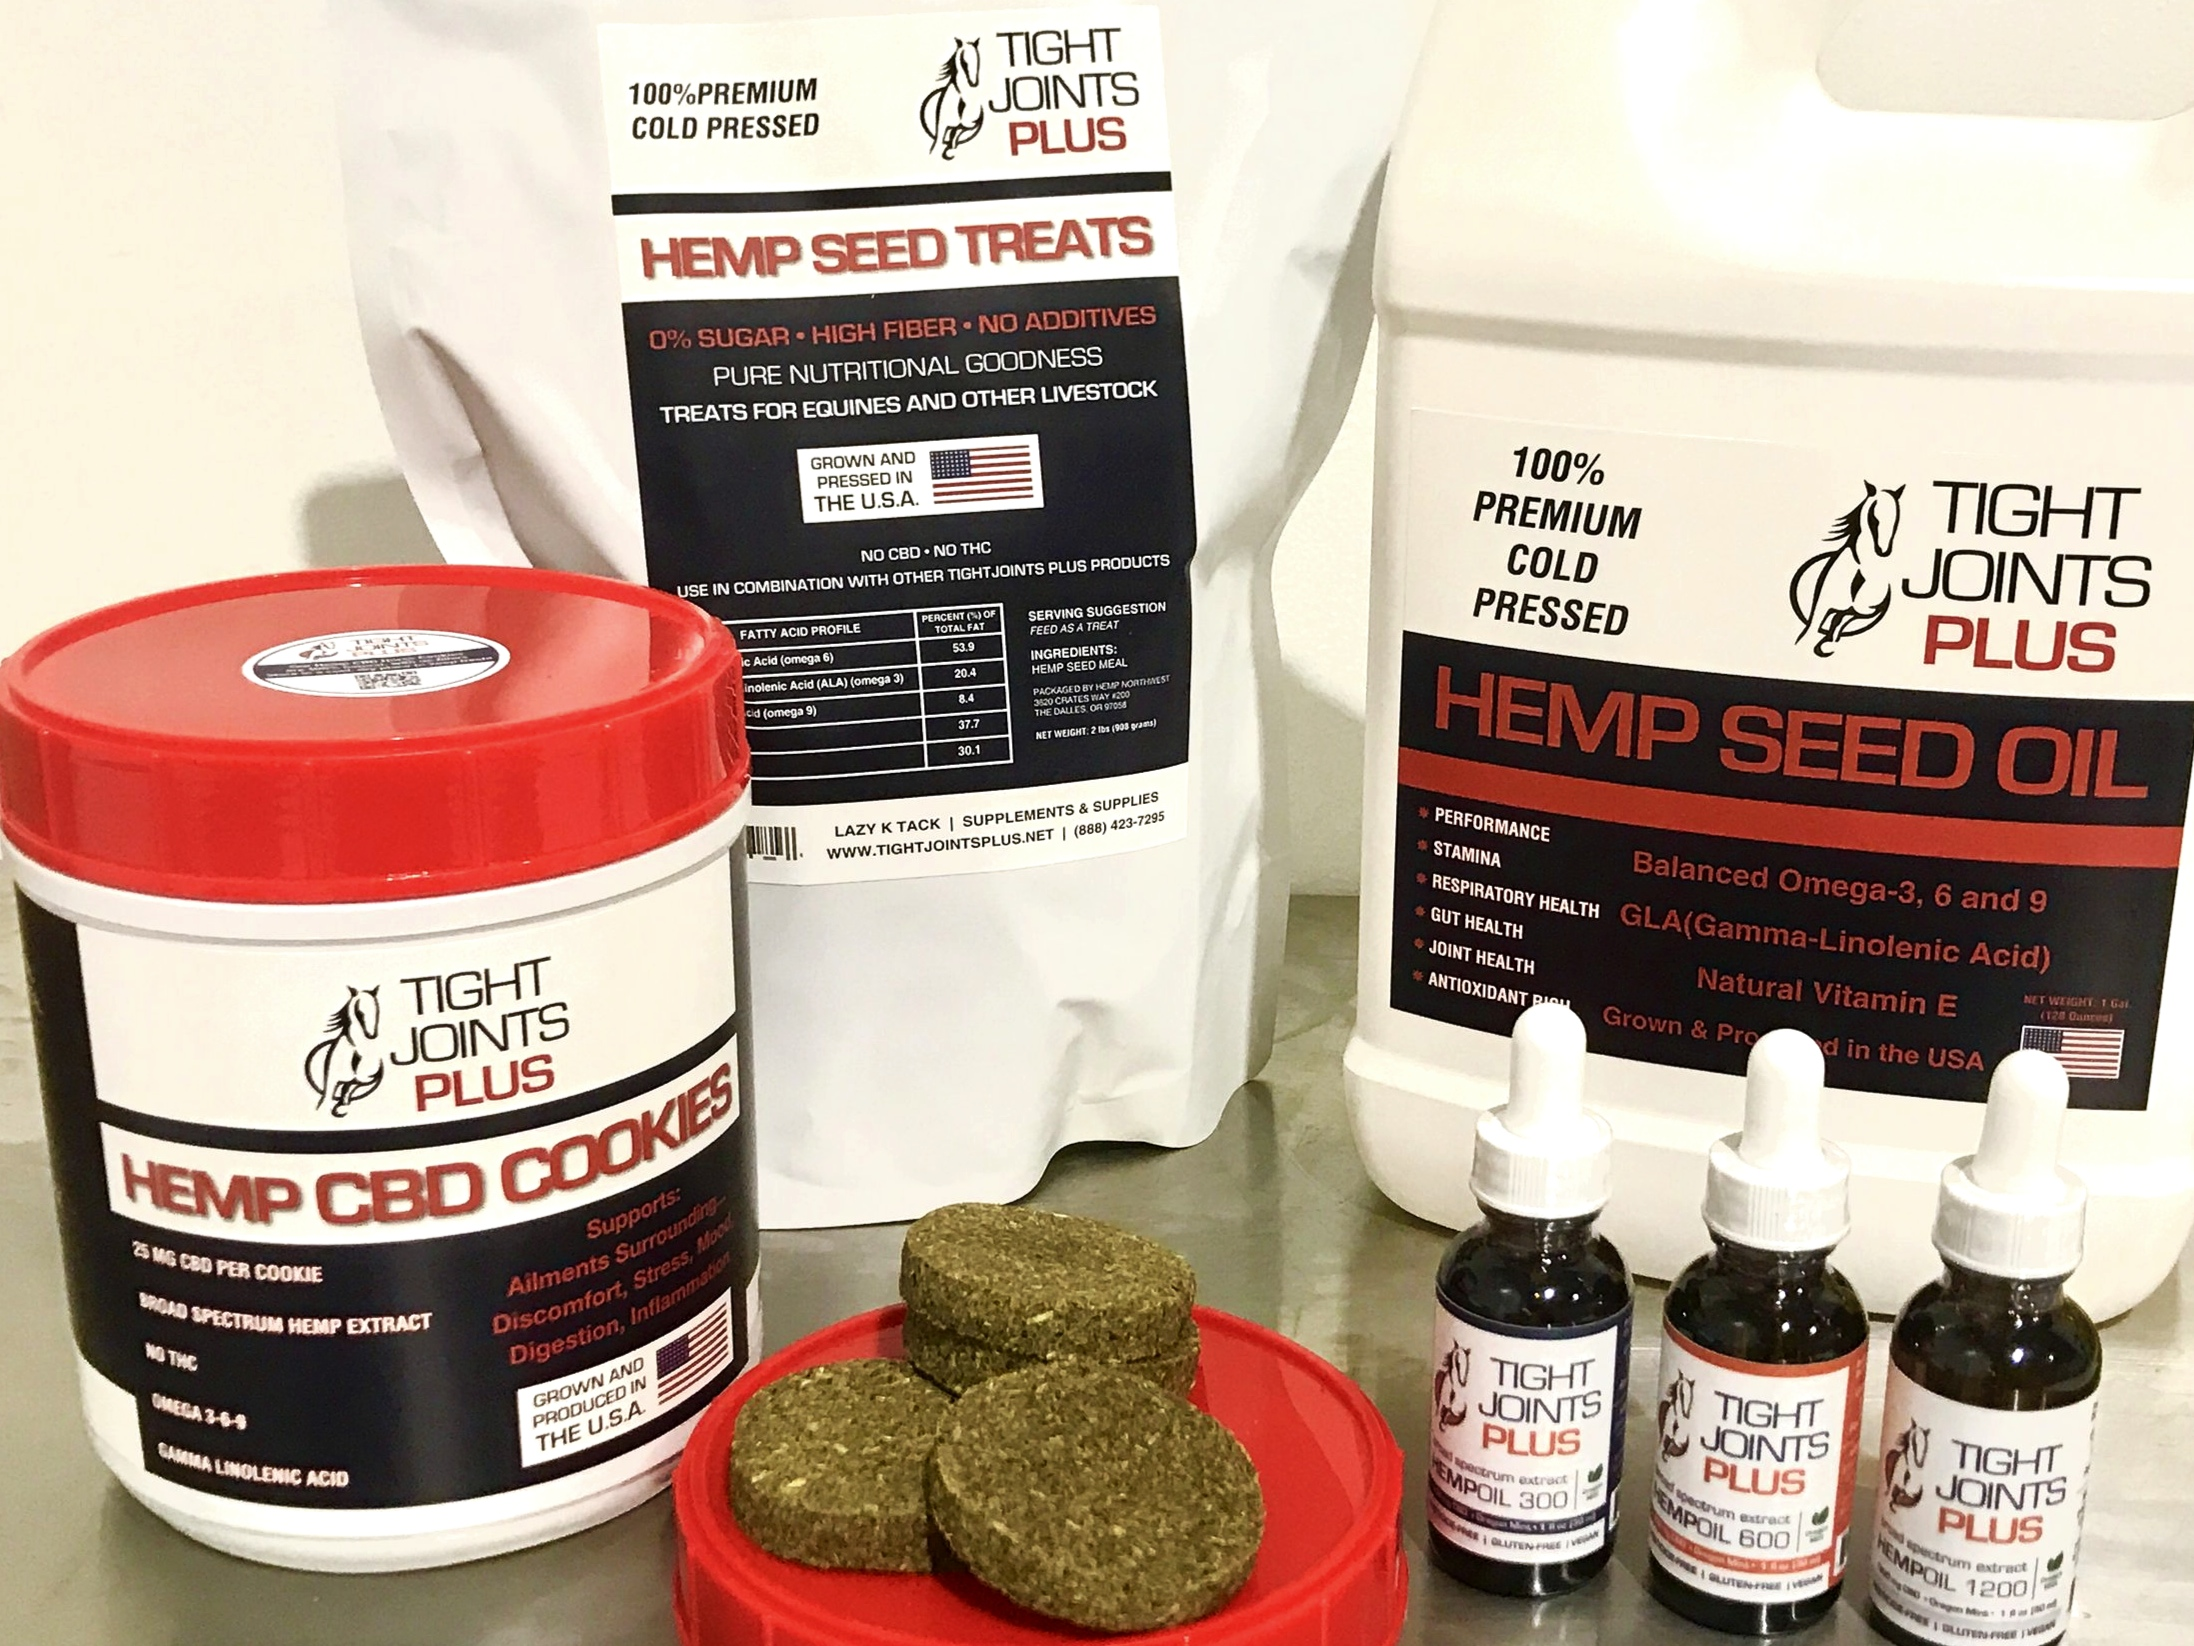 Equine Hemp Products by Tight Joints Plus, made by Hemp Northwest with Washington and Oregon grown hemp.